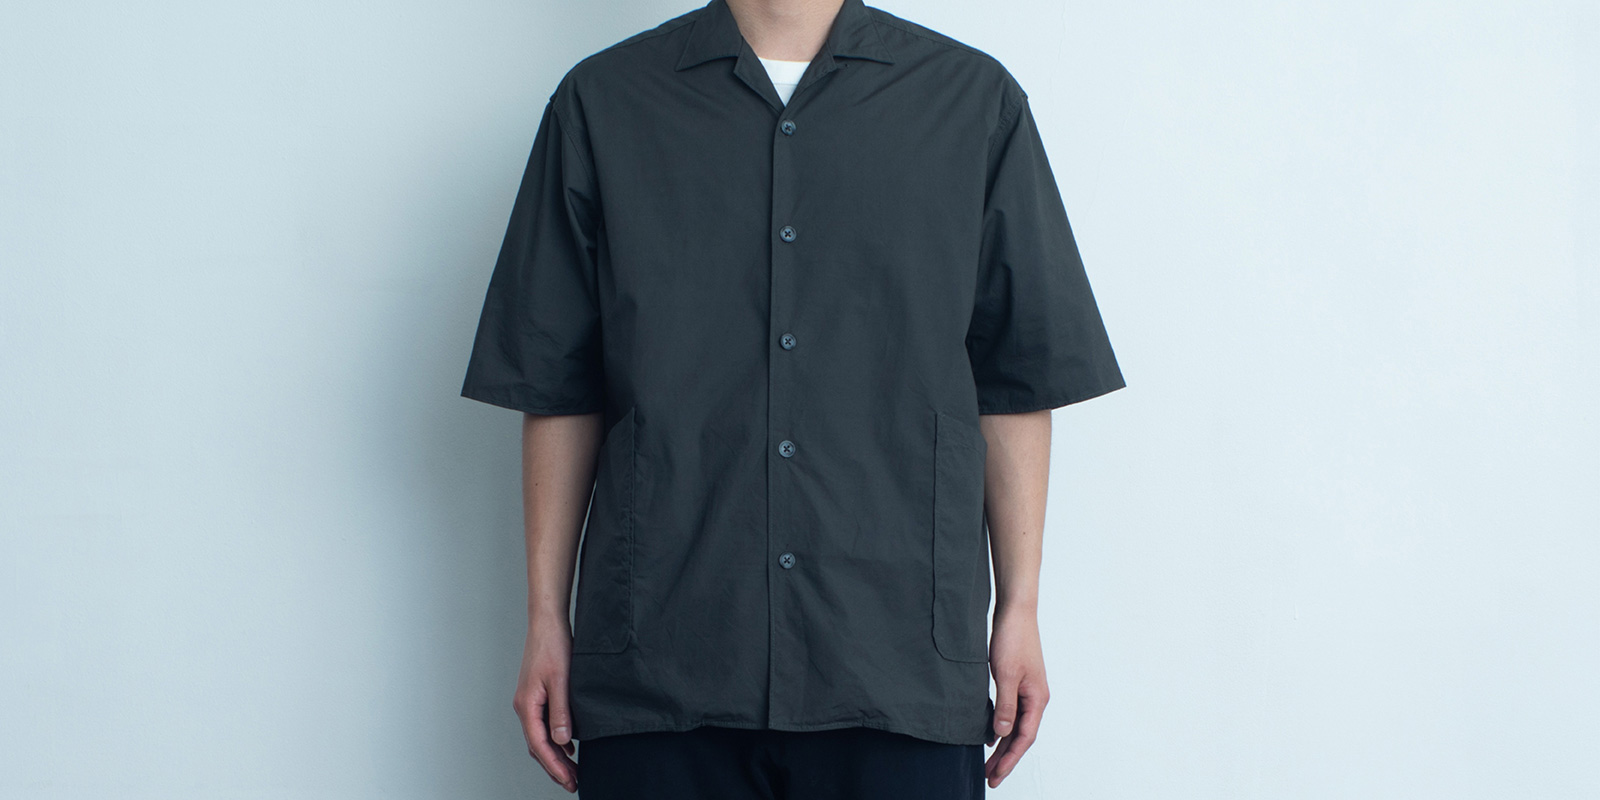 d 207 SIDE POCKET SHIRT・DARK GRAY・L